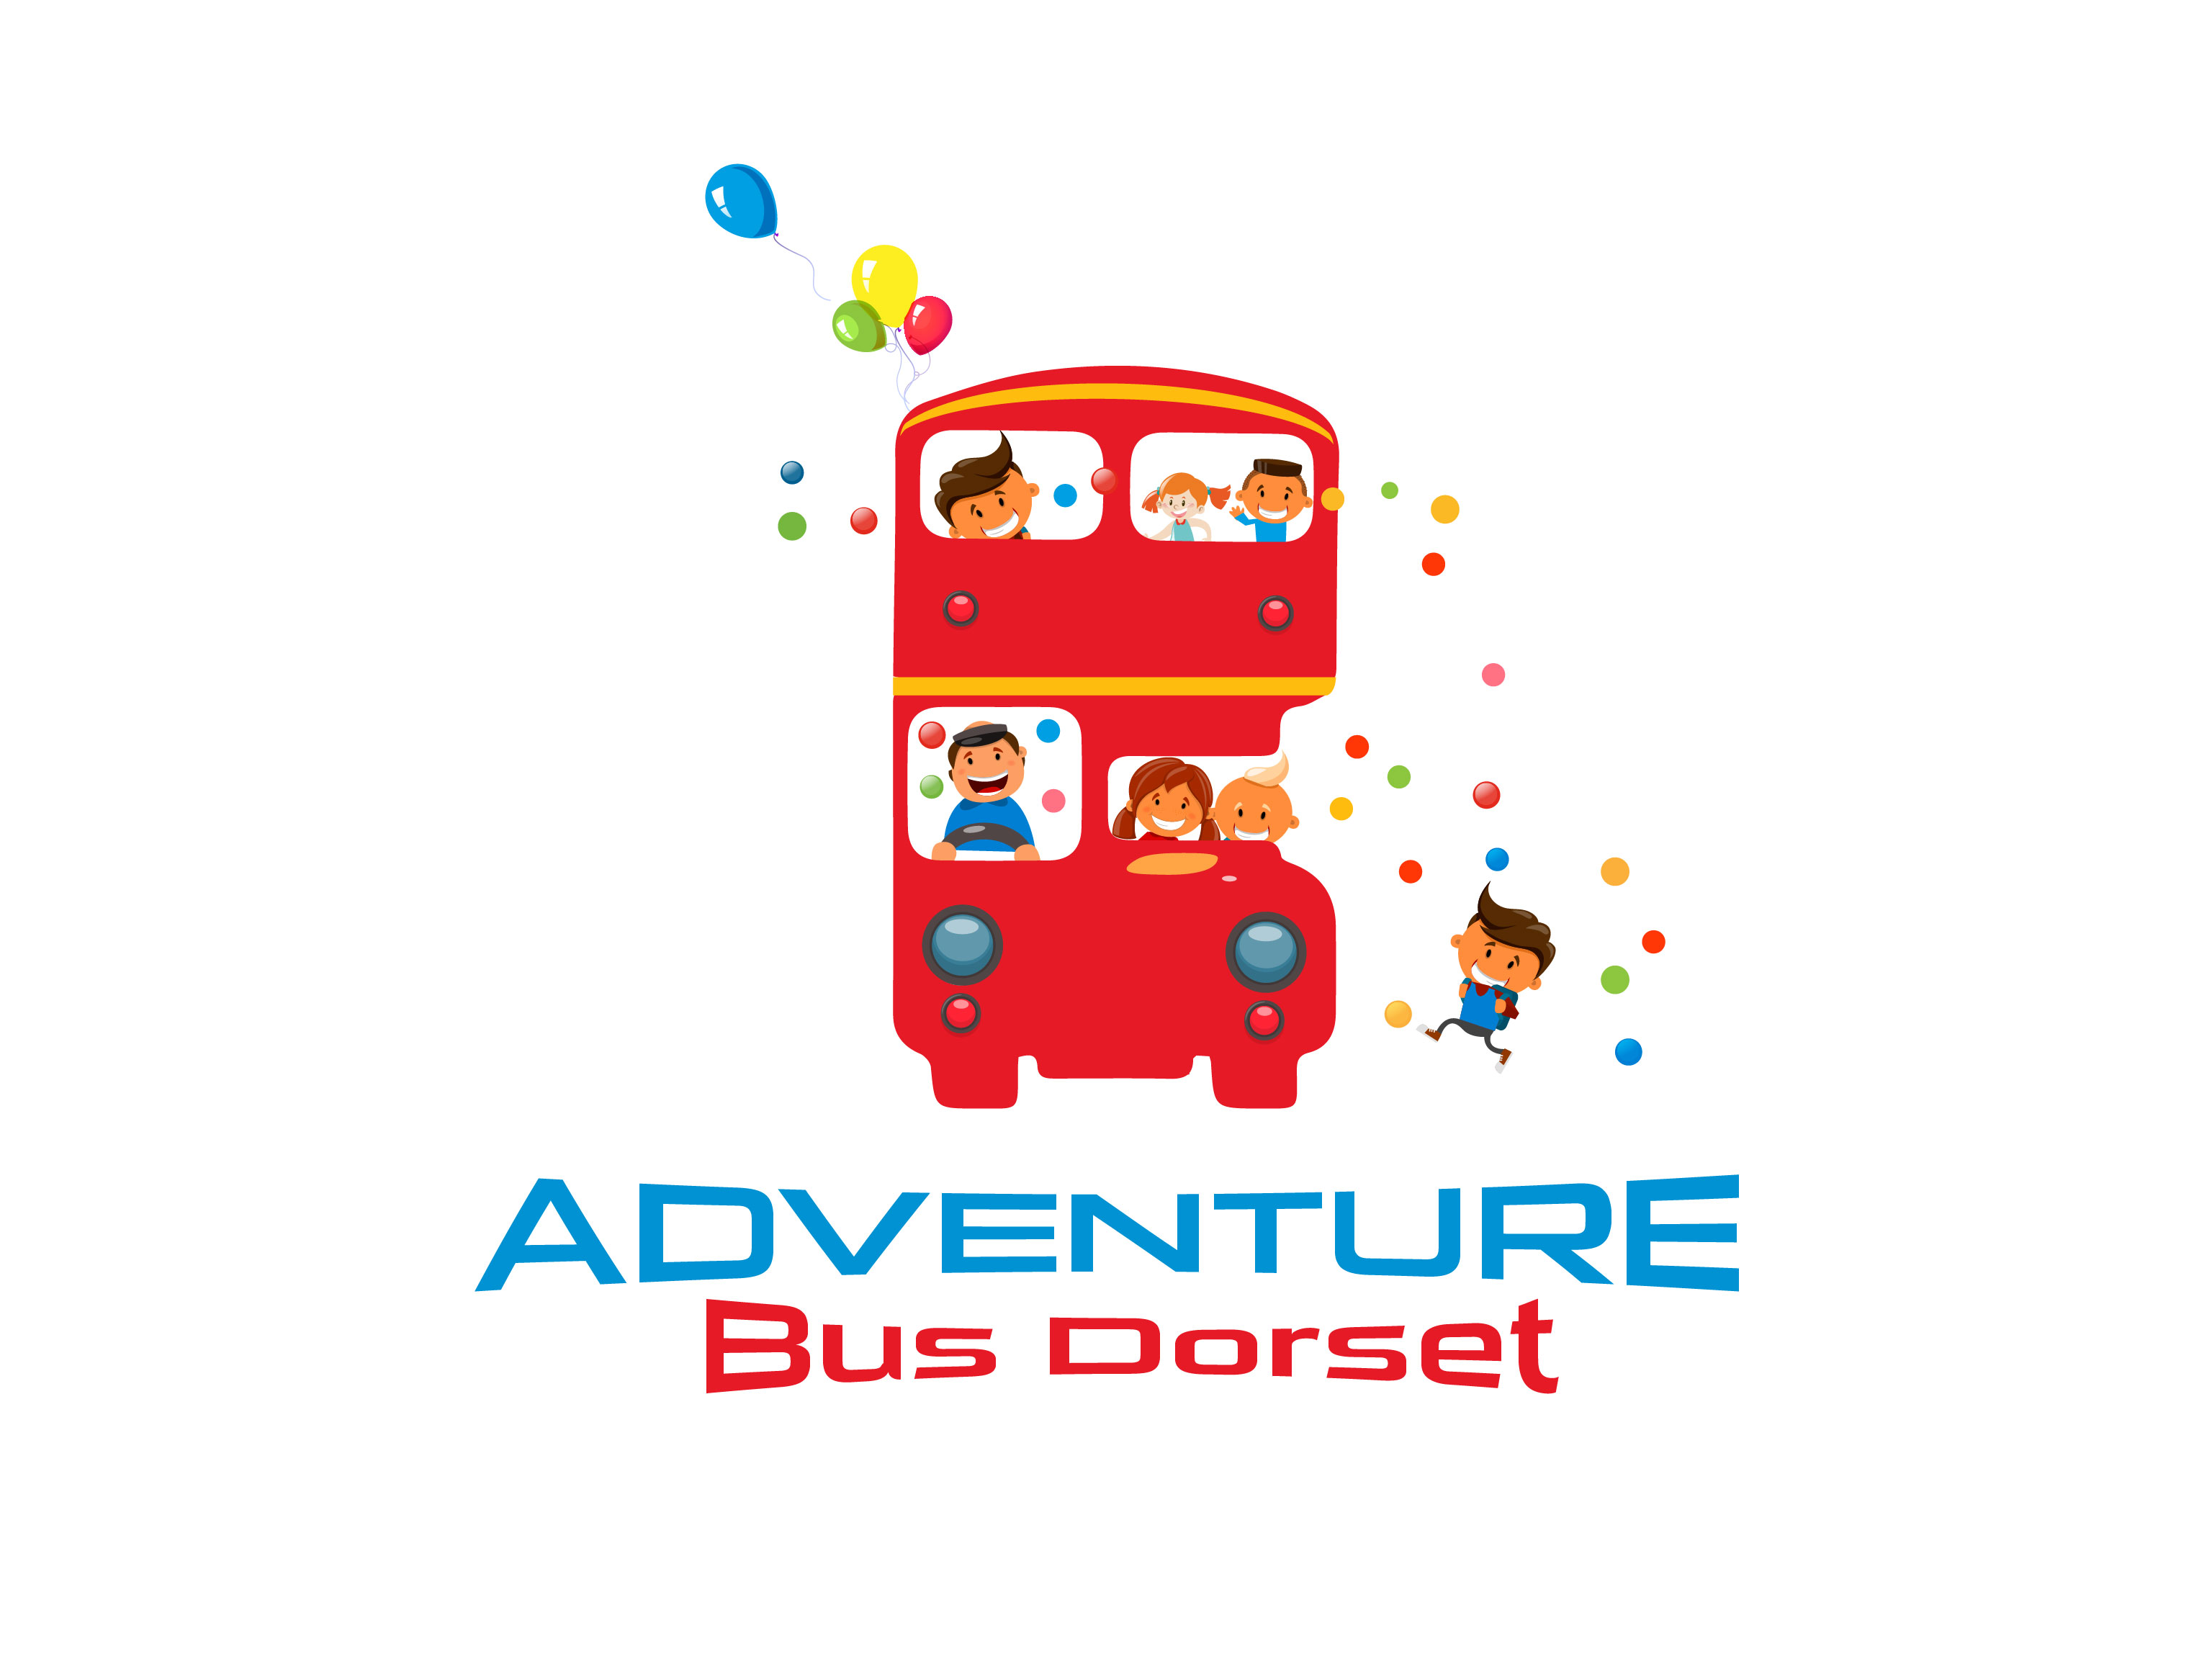 Adventure Bus Dorset